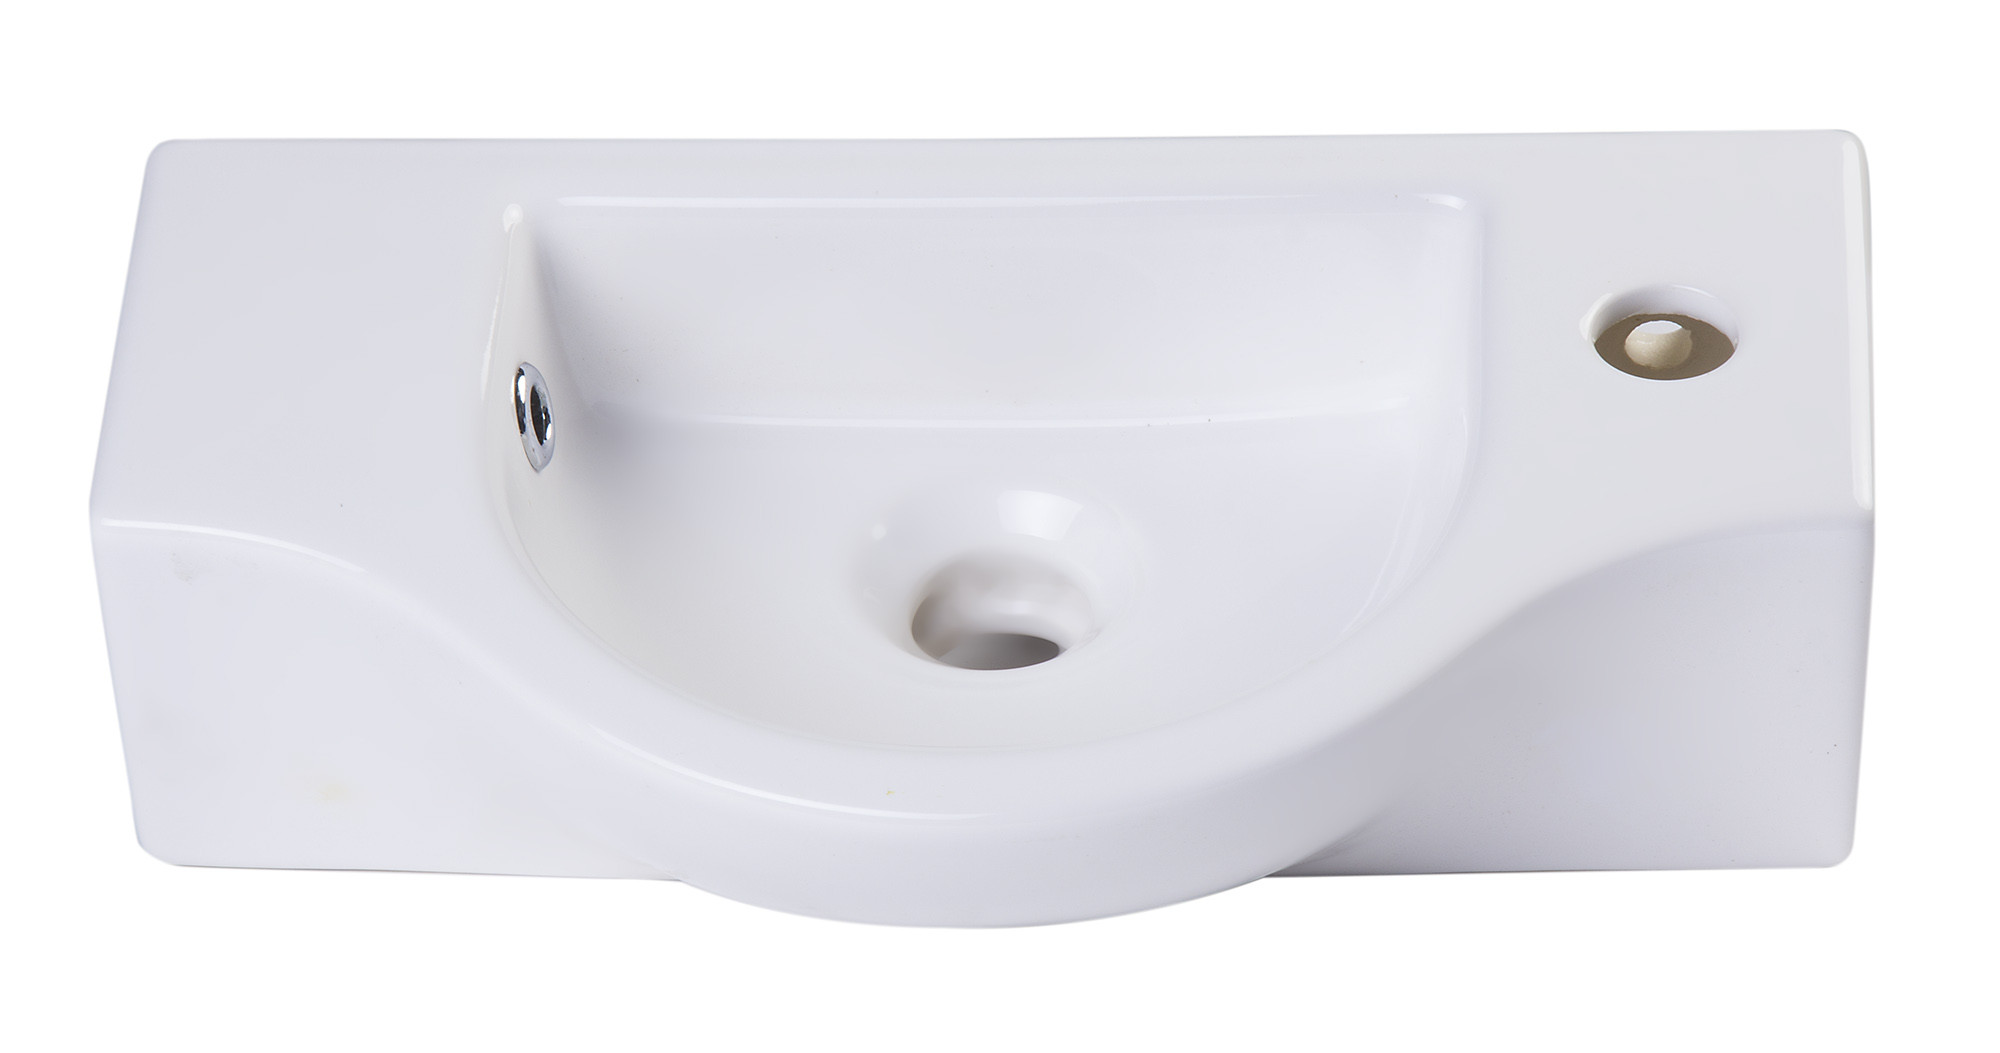 ALFI brand AB105 Small Wall Mounted White Ceramic Bathroom ...